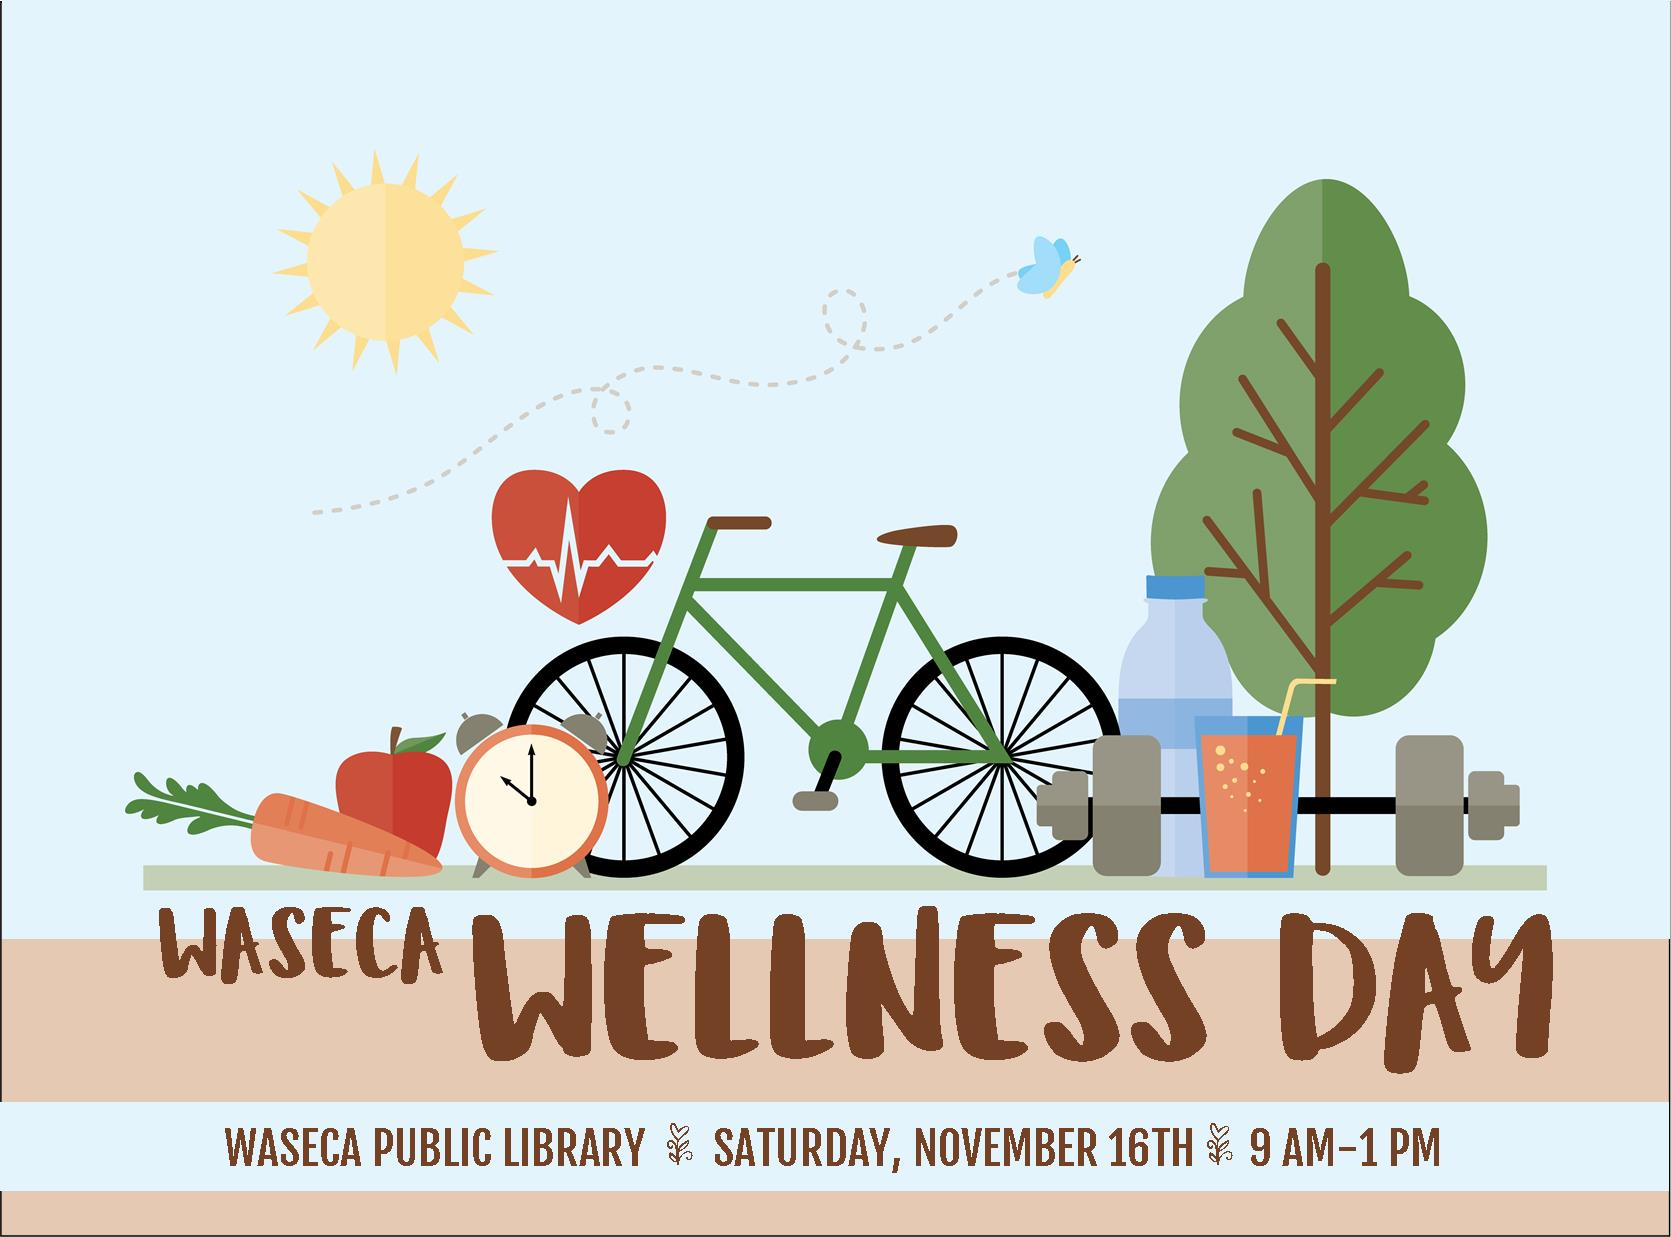 Waseca Wellness Day